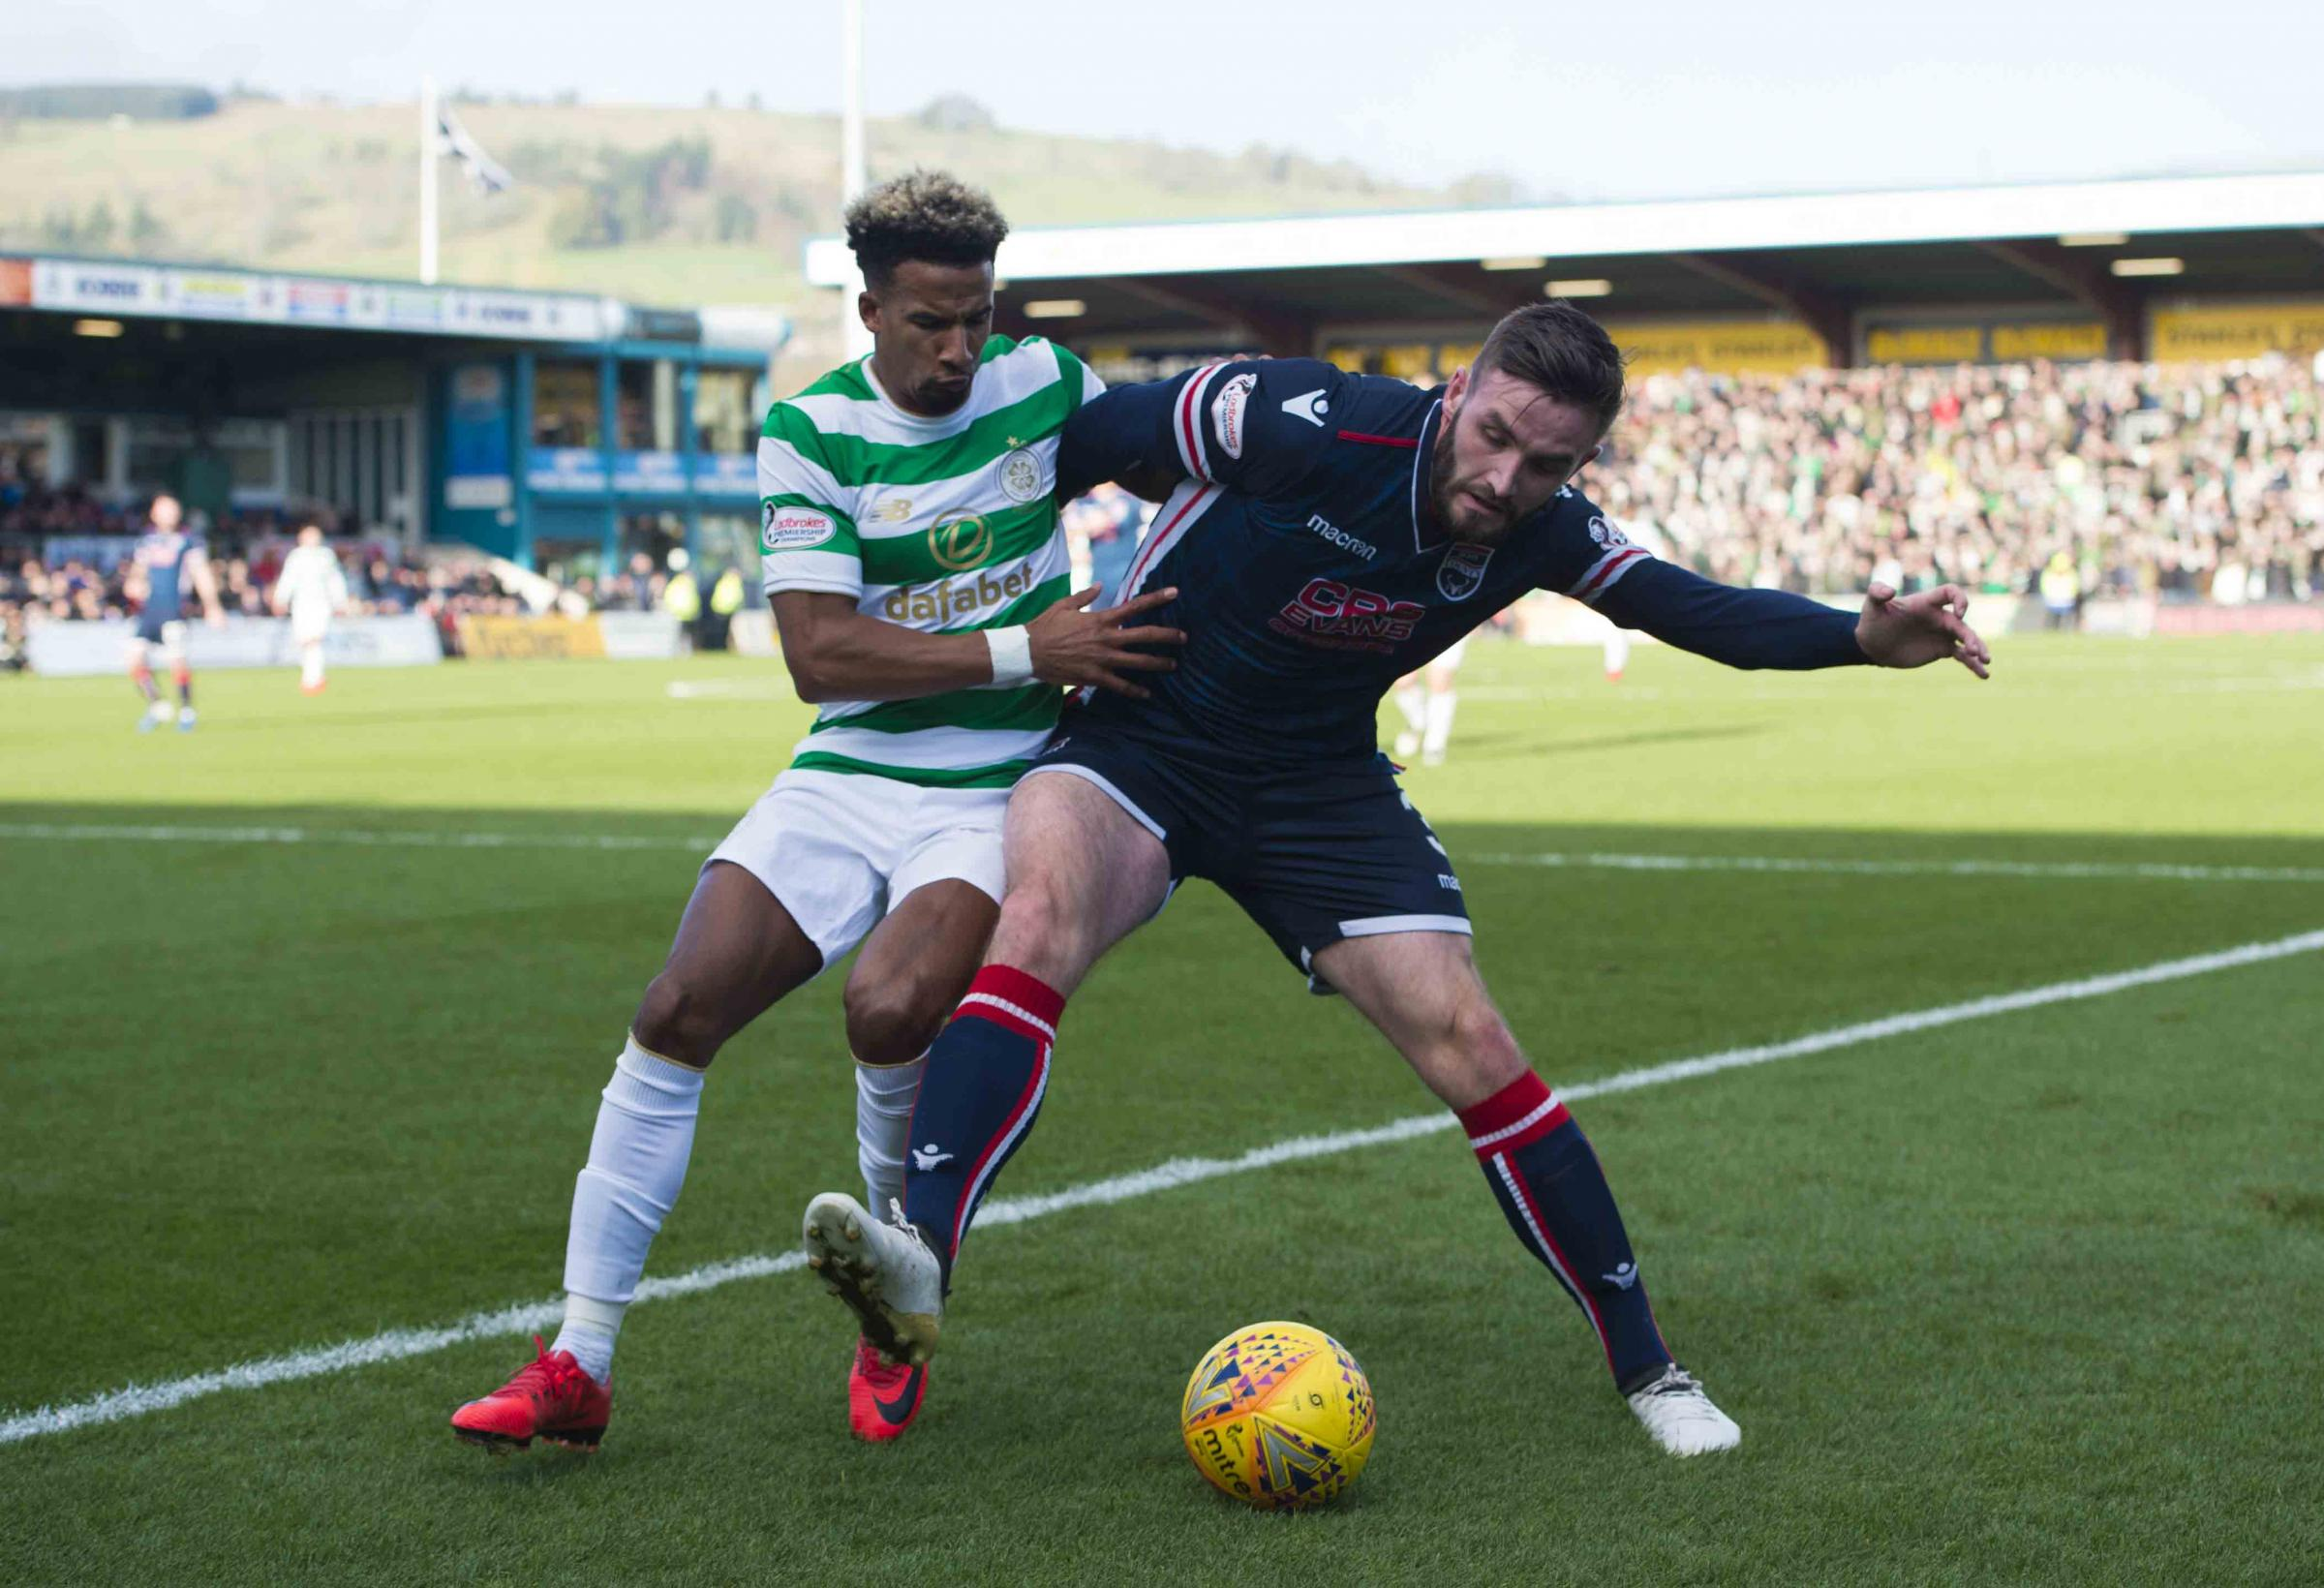 Ross County 1-1 Celtic LIVE: Stewart equalises Christie's early opener